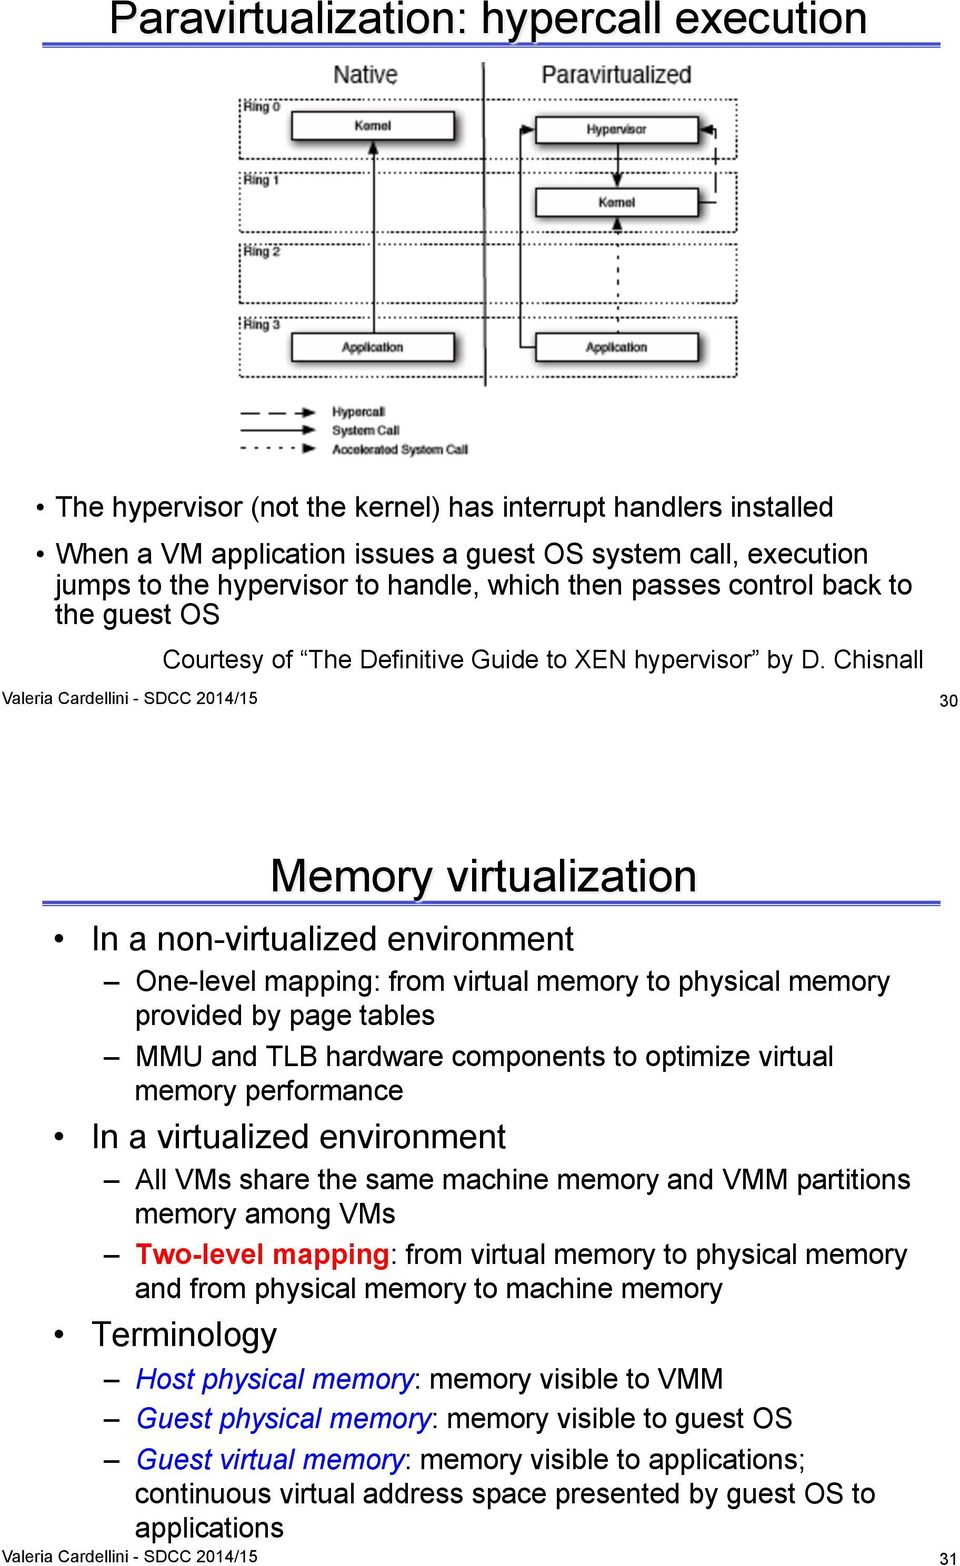 Chisnall 30 Memory virtualization In a non-virtualized environment One-level mapping: from virtual memory to physical memory provided by page tables MMU and TLB hardware components to optimize